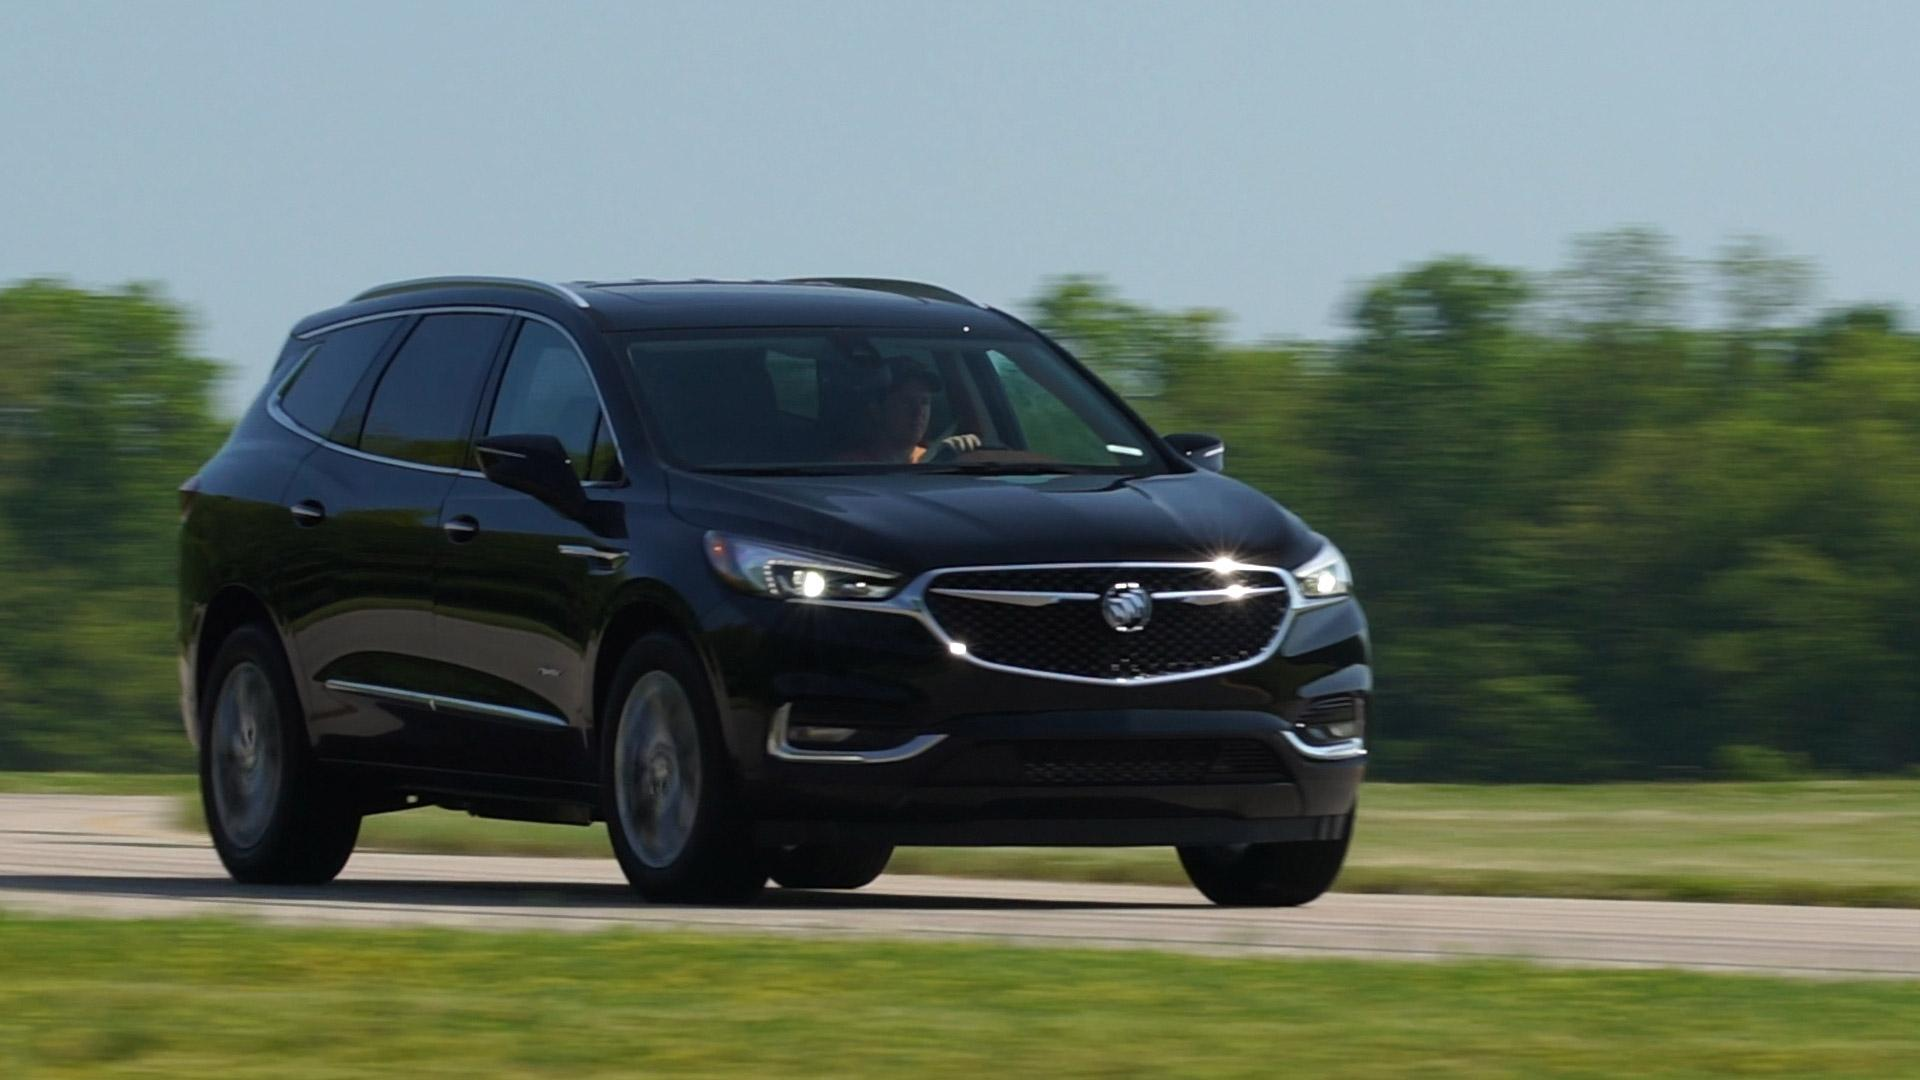 2018 Buick Enclave: Redesign, Styling, New Engines, Price >> 2018 Buick Enclave Review Room For Improvement Consumer